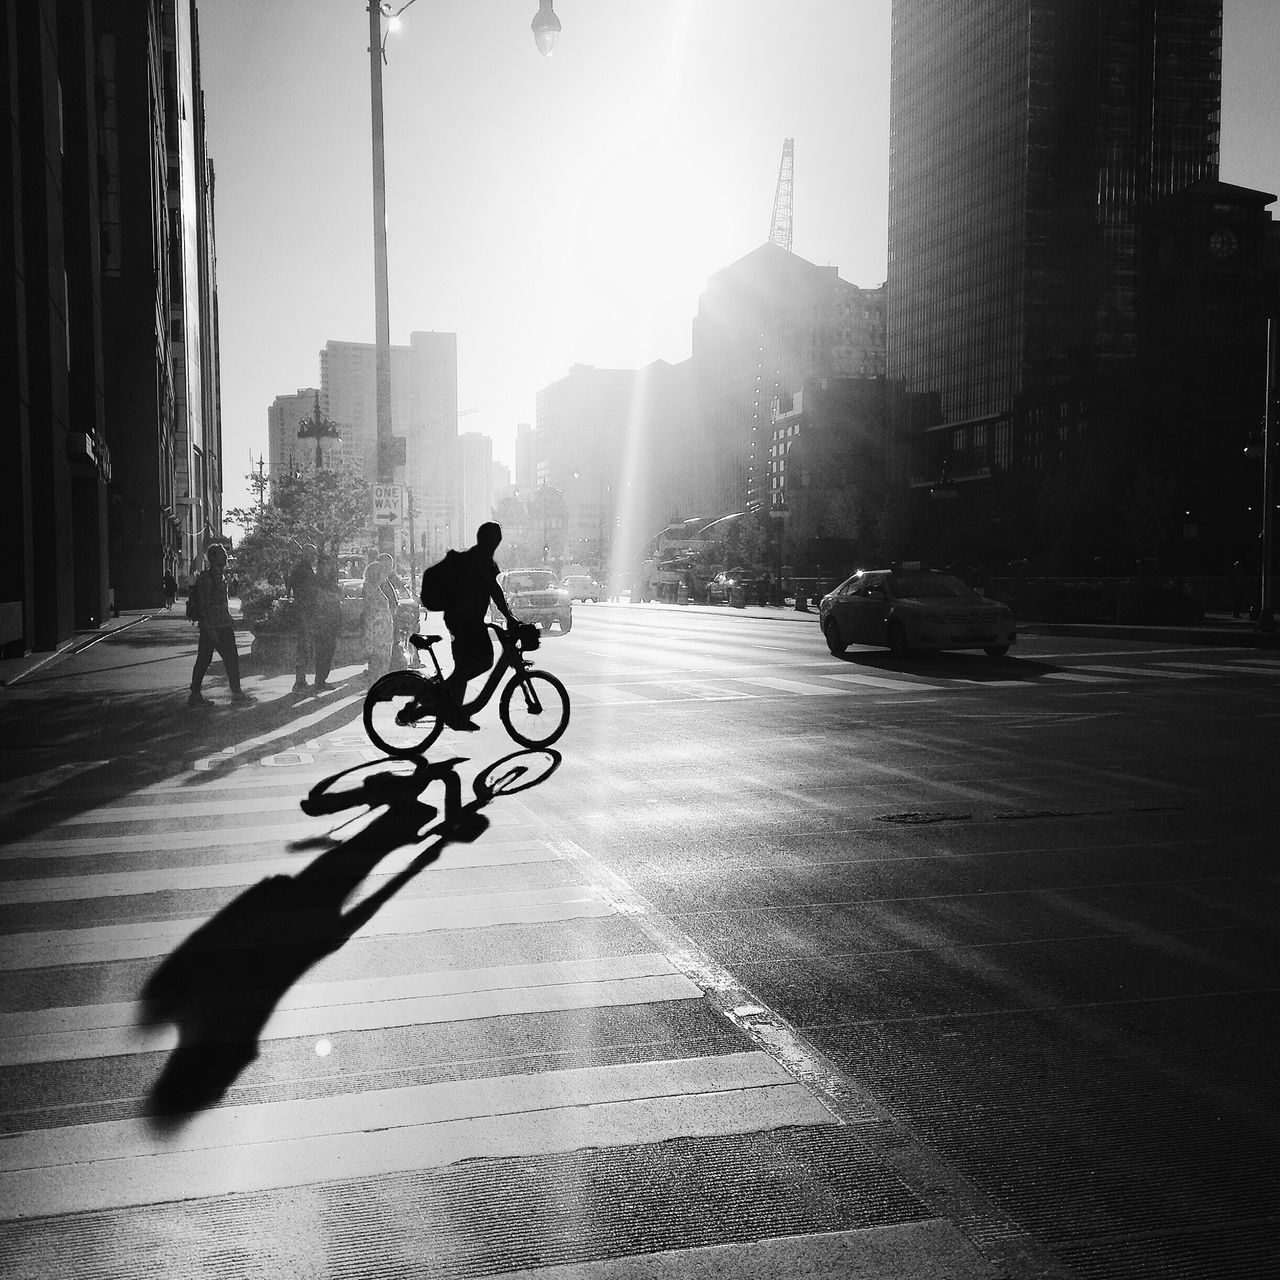 Land Vehicle City Transportation Bicycle Mode Of Transport Sunlight Built Structure Real People Building Exterior Street Full Length Architecture Men Outdoors Riding Cycling Silhouette One Person Day Only Men